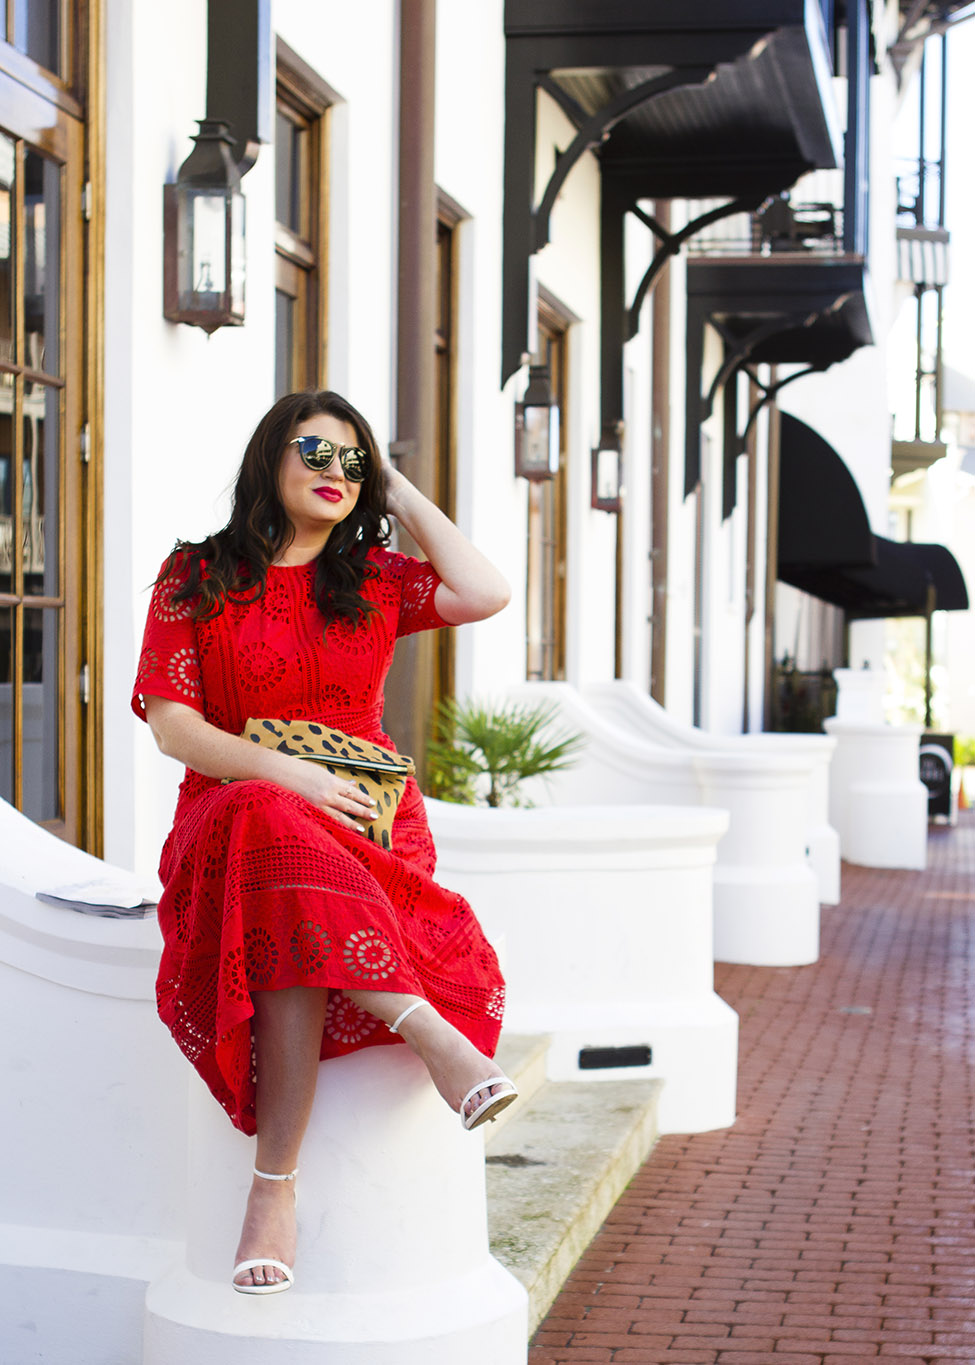 Red Midi Dress Rosemary Beach Jami Ray 30A